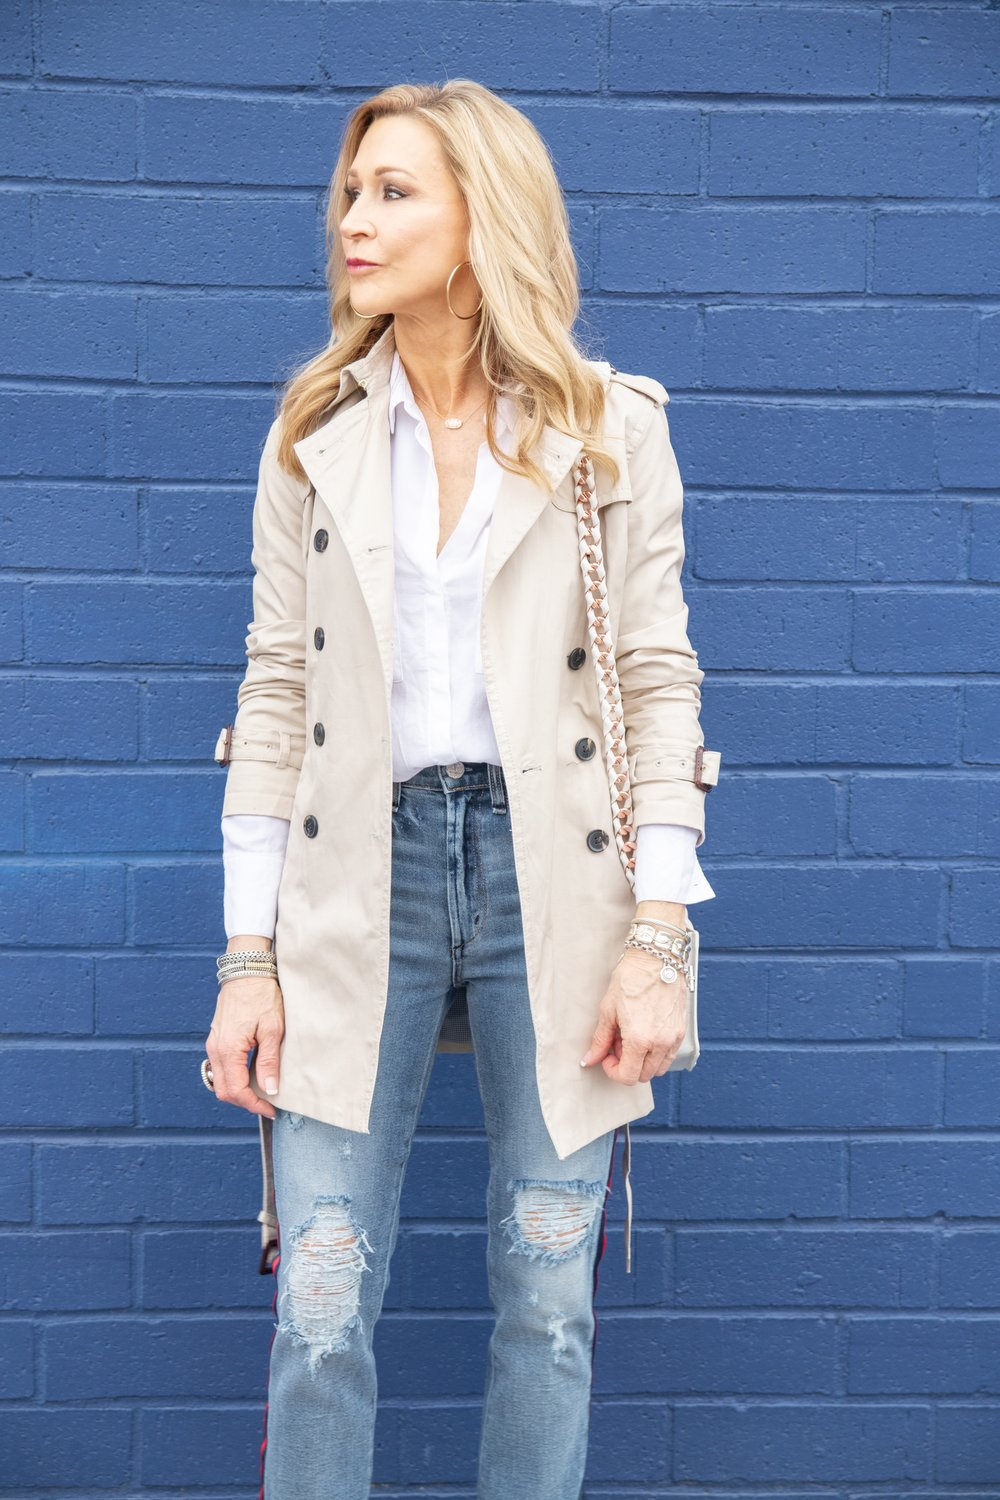 Banana Republic Trench with McGuire Denim Jeans and Zara Booties